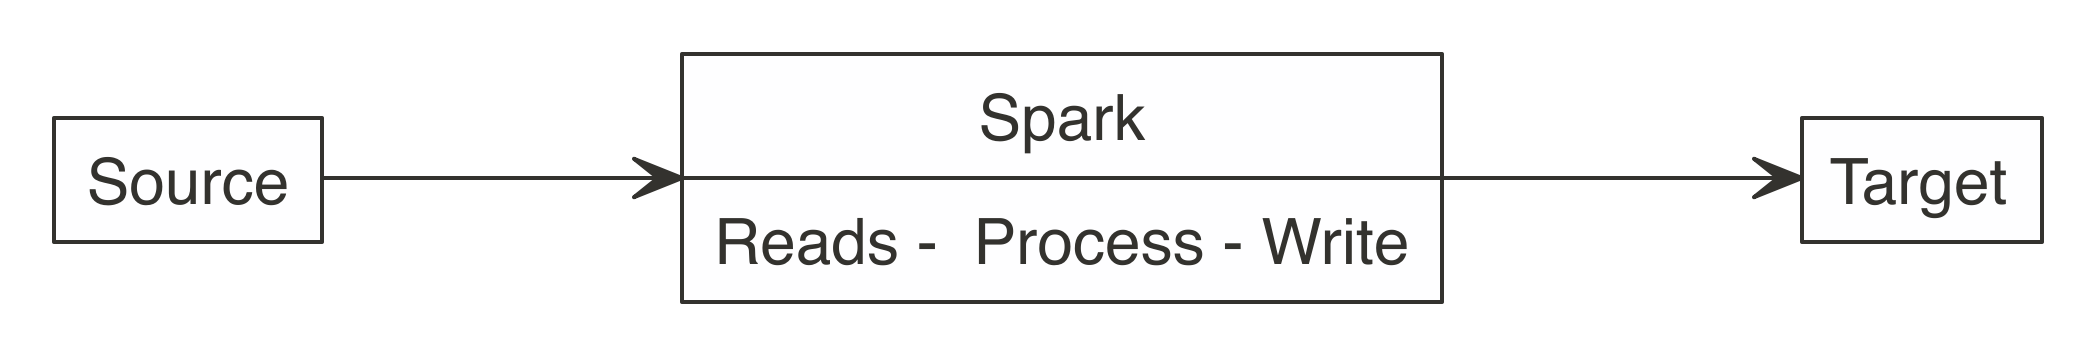 Chapter 8 Data | Mastering Apache Spark with R